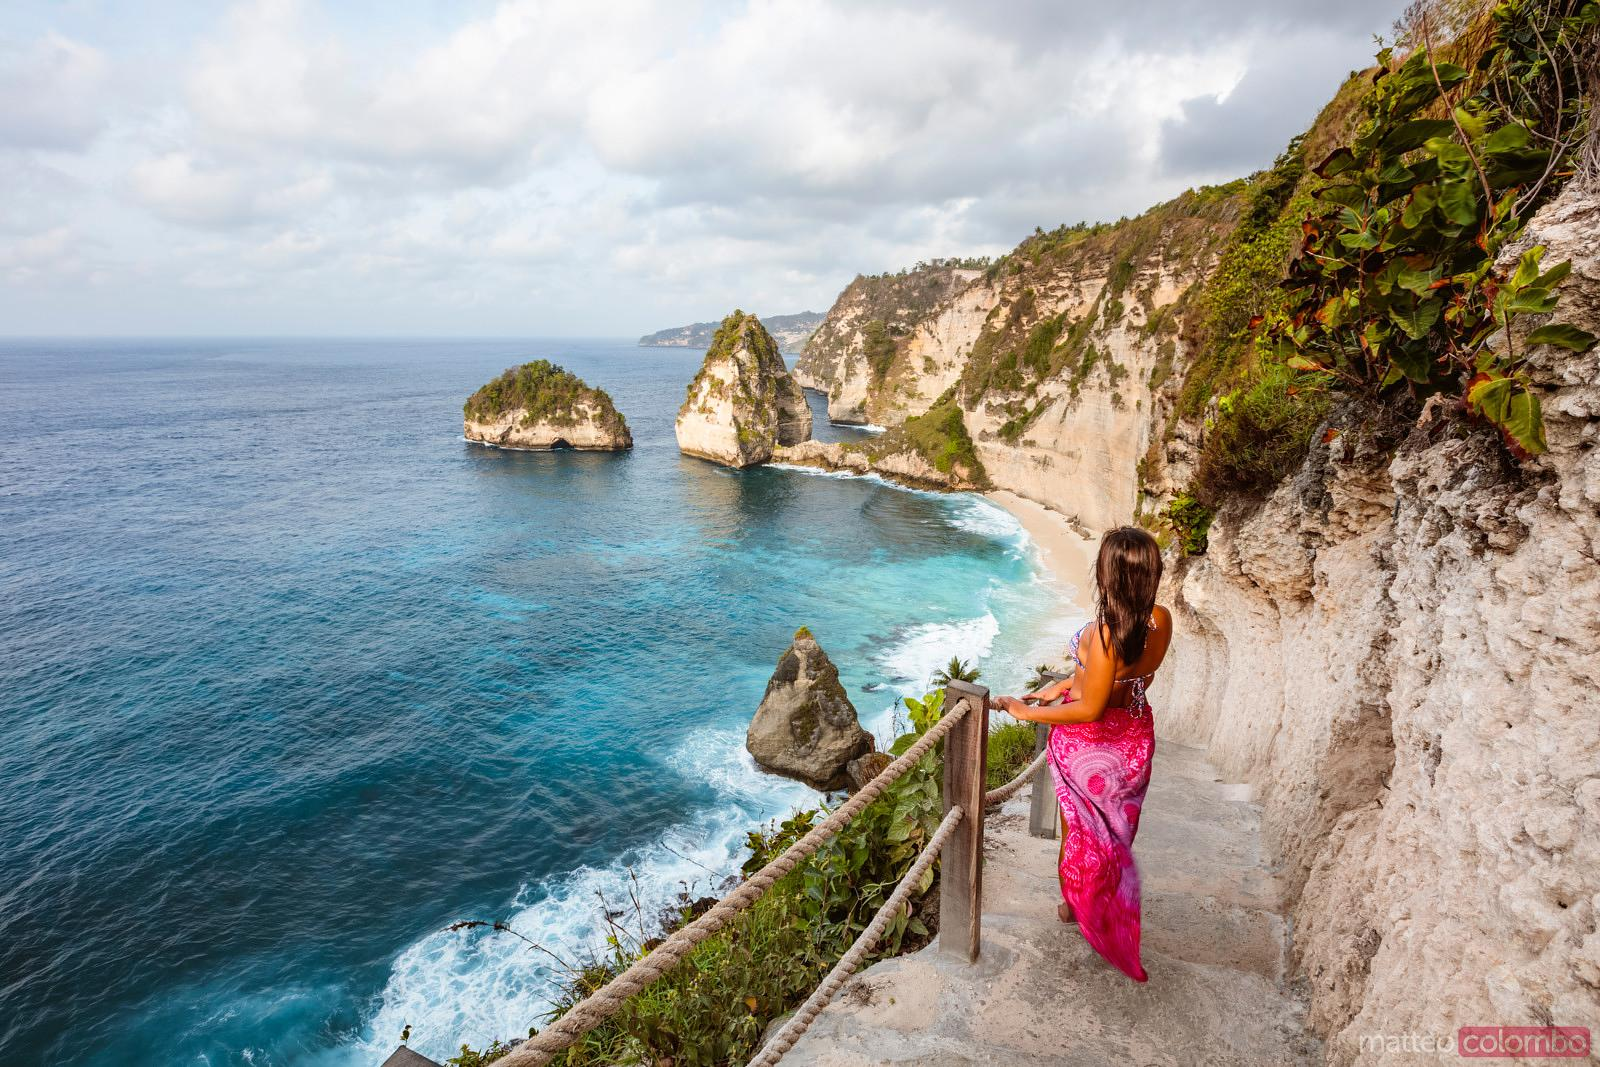 Female tourist at Diamond beach, Nusa Penida, Bali